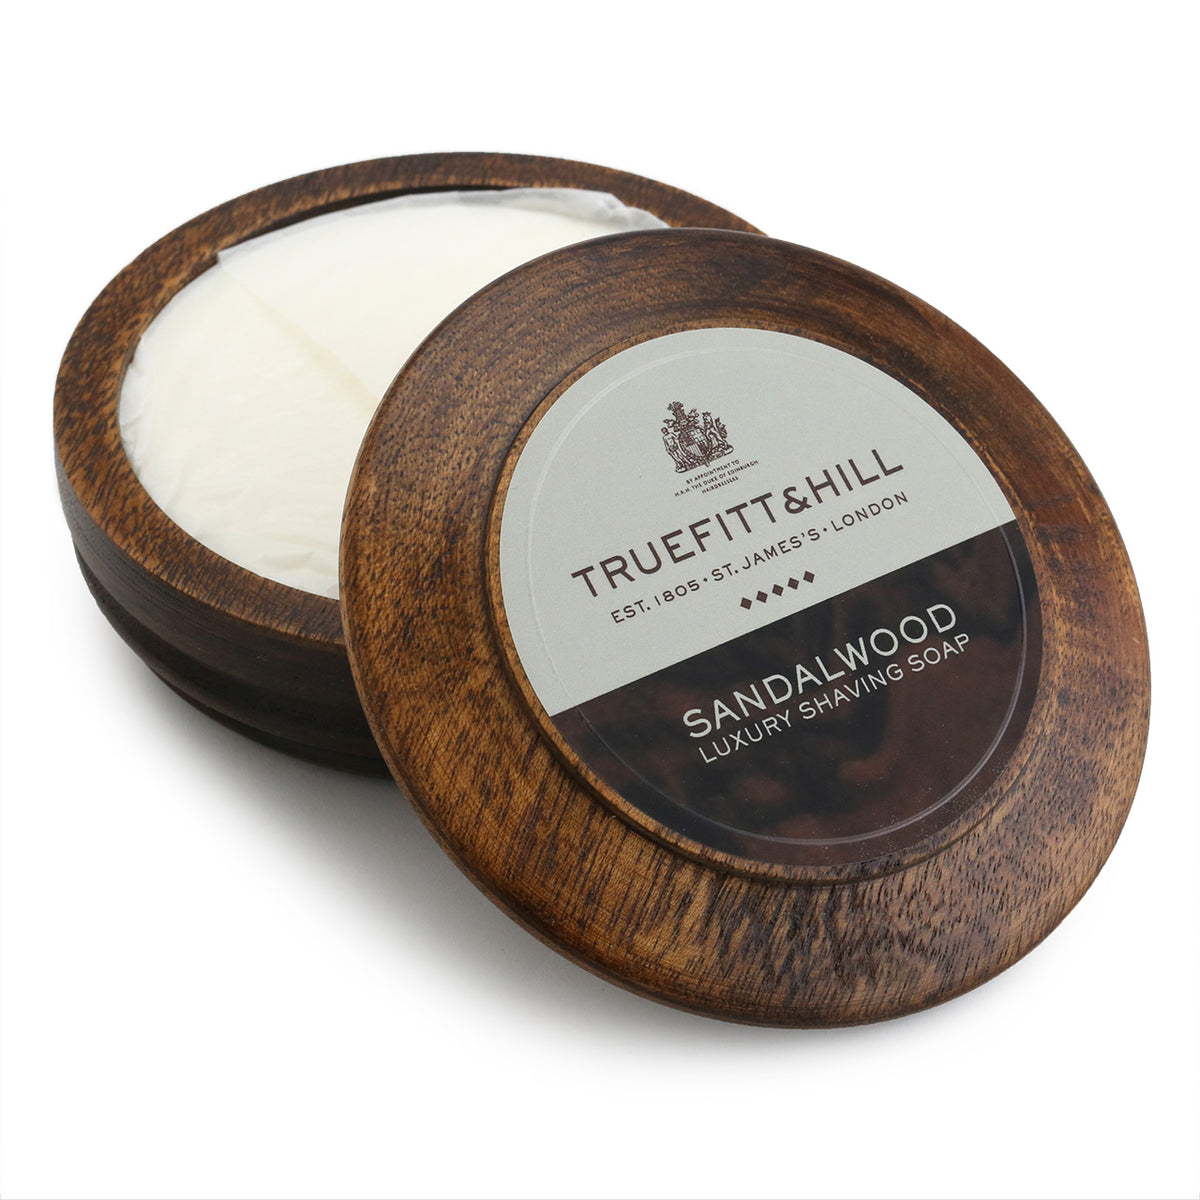 Truefitt & Hill Sandalwood Luxury Shaving Soap in a Wooden Bowl